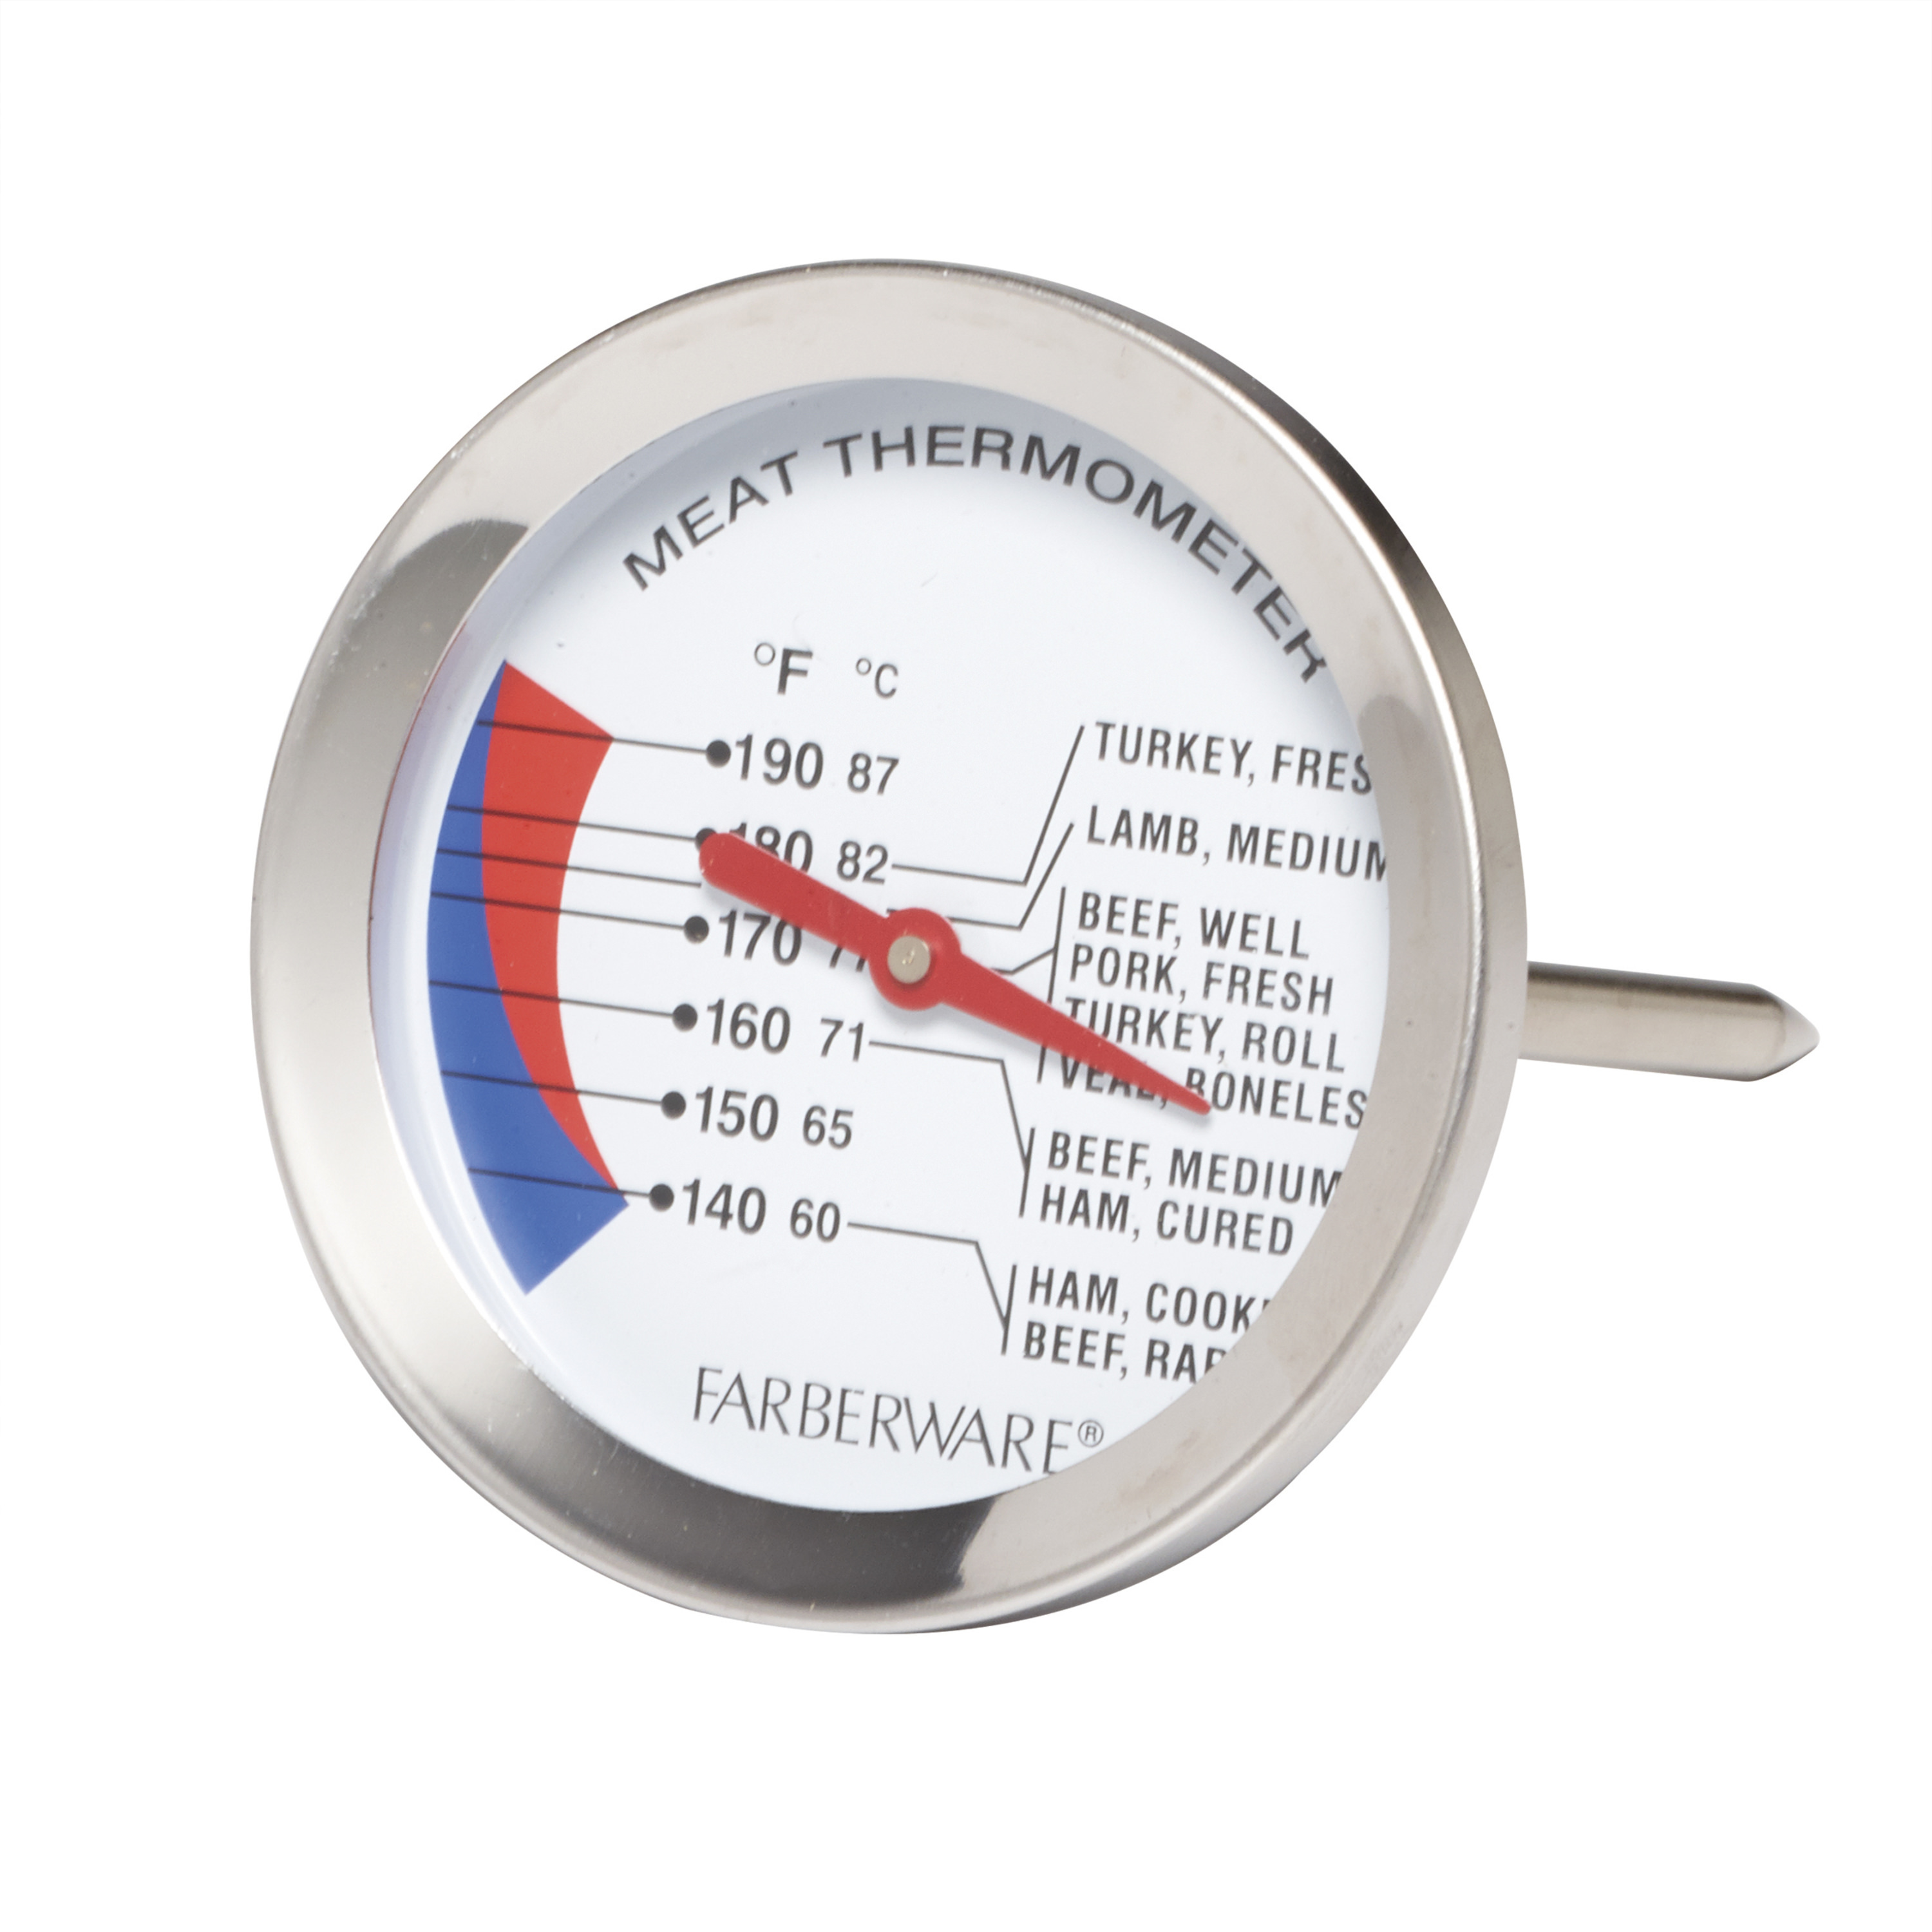 Farberware Protek Large Stainless Steel Meat Thermometer